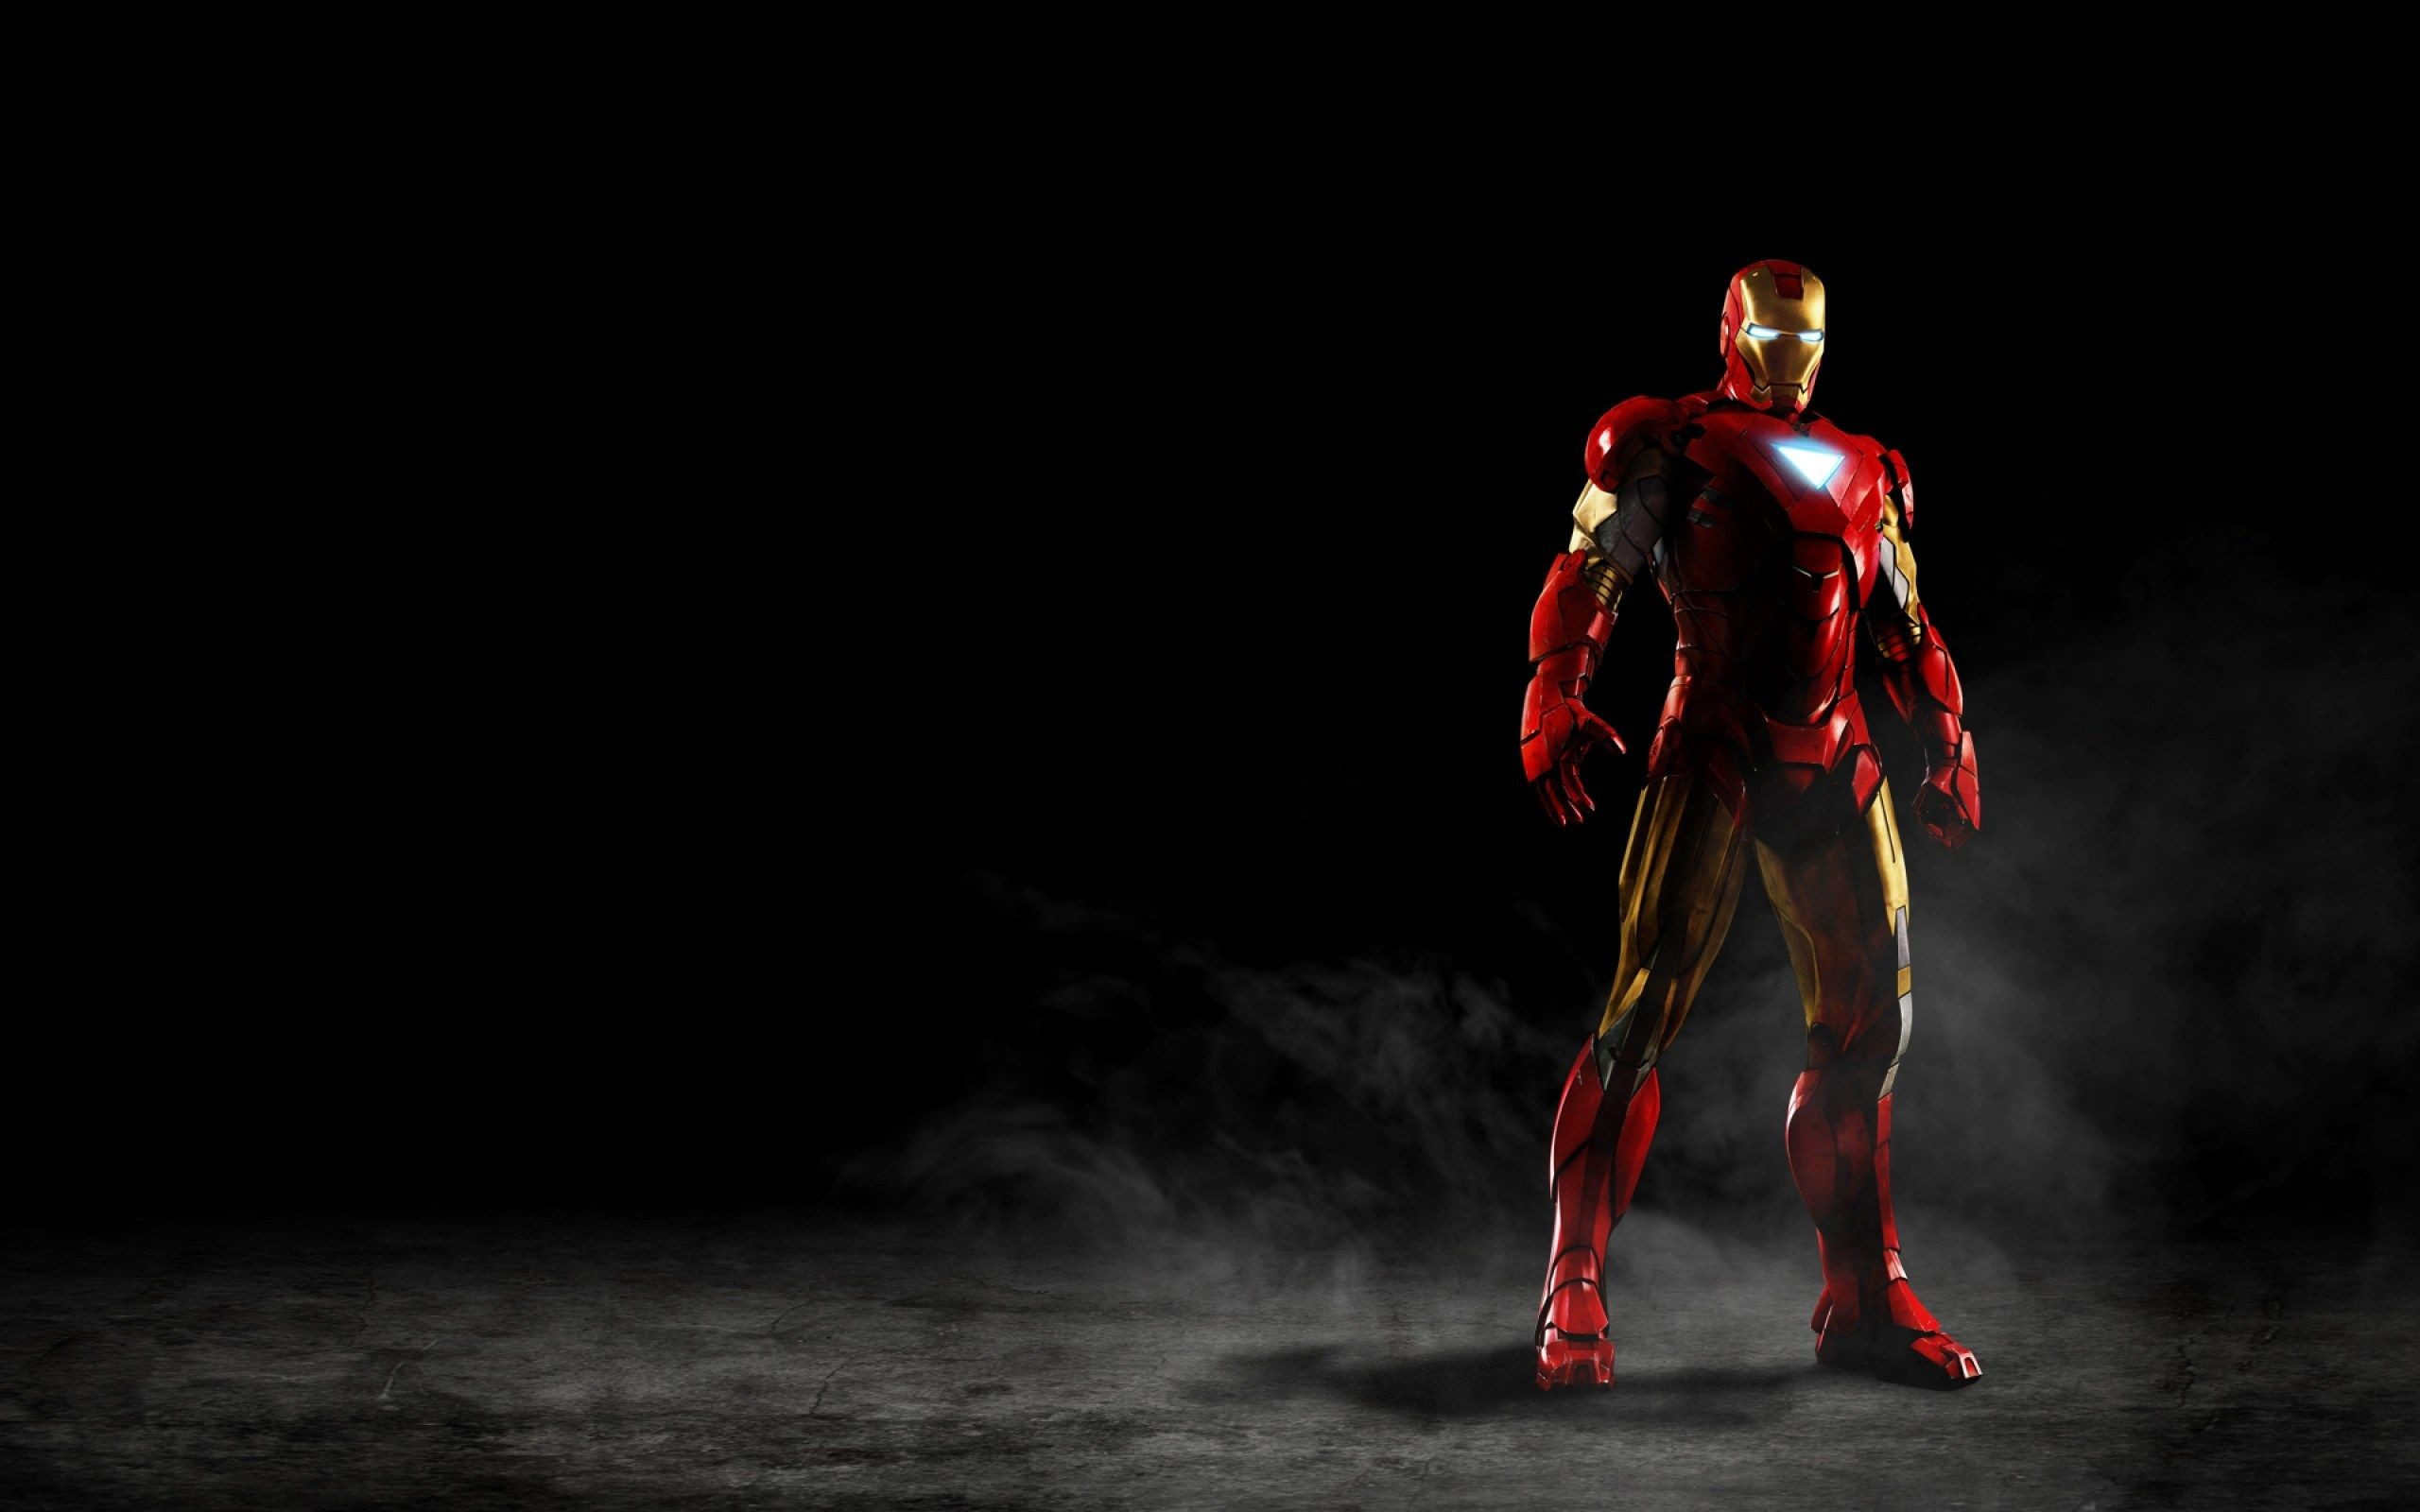 Res: 2560x1600, Related Wallpapers from Drive Movie. Iron Man Wallpaper (1)